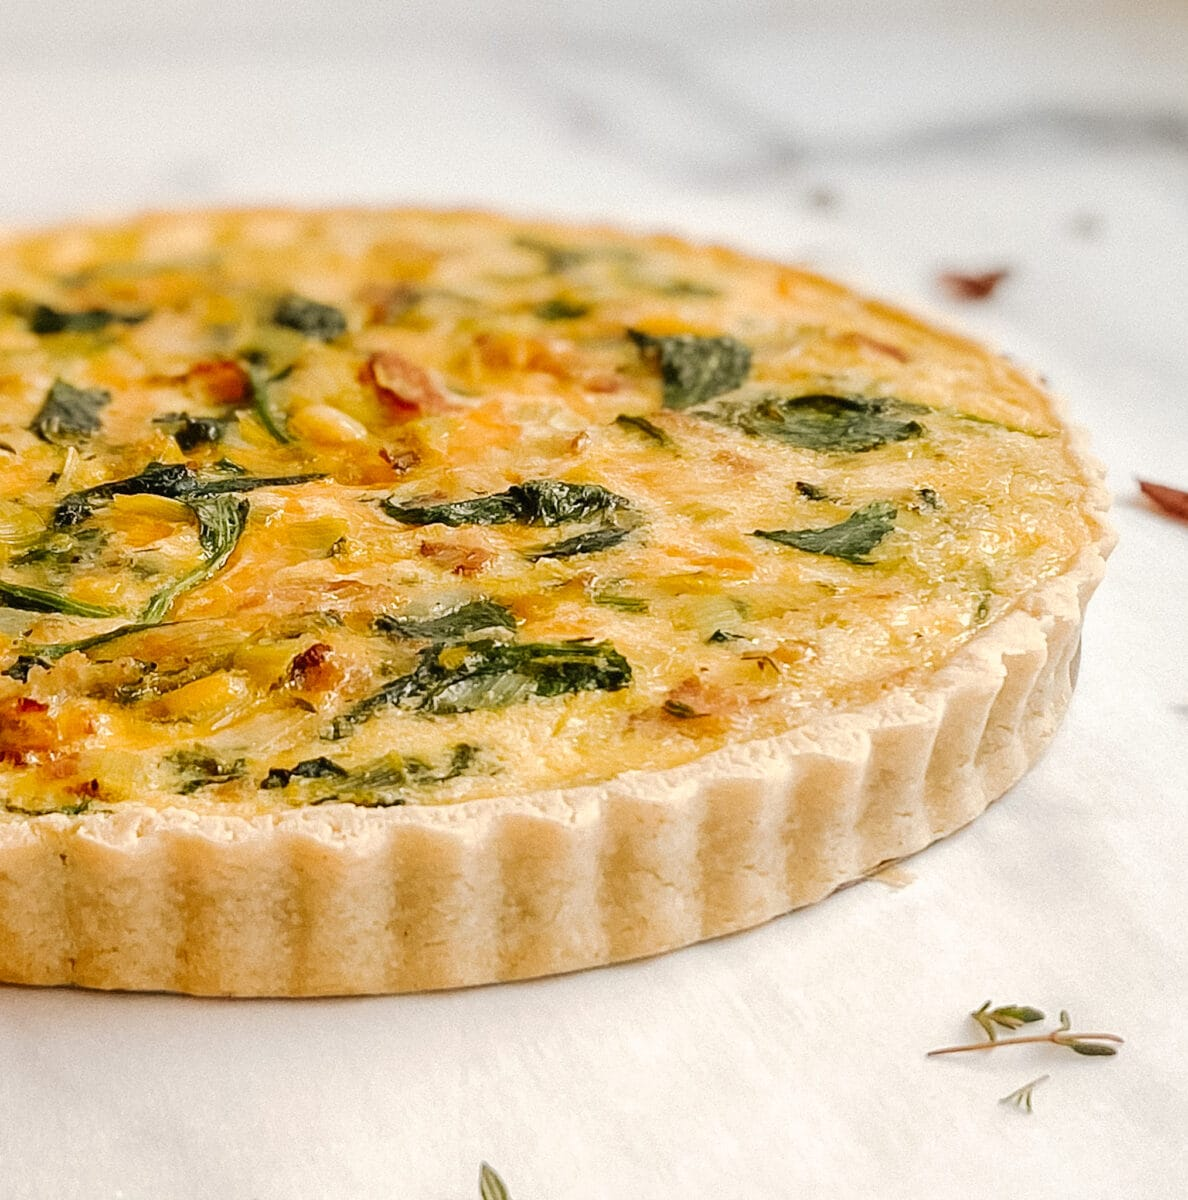 side view of quiche, with pastry crust, green spinach, cheese and bacon can be seen in the quiche